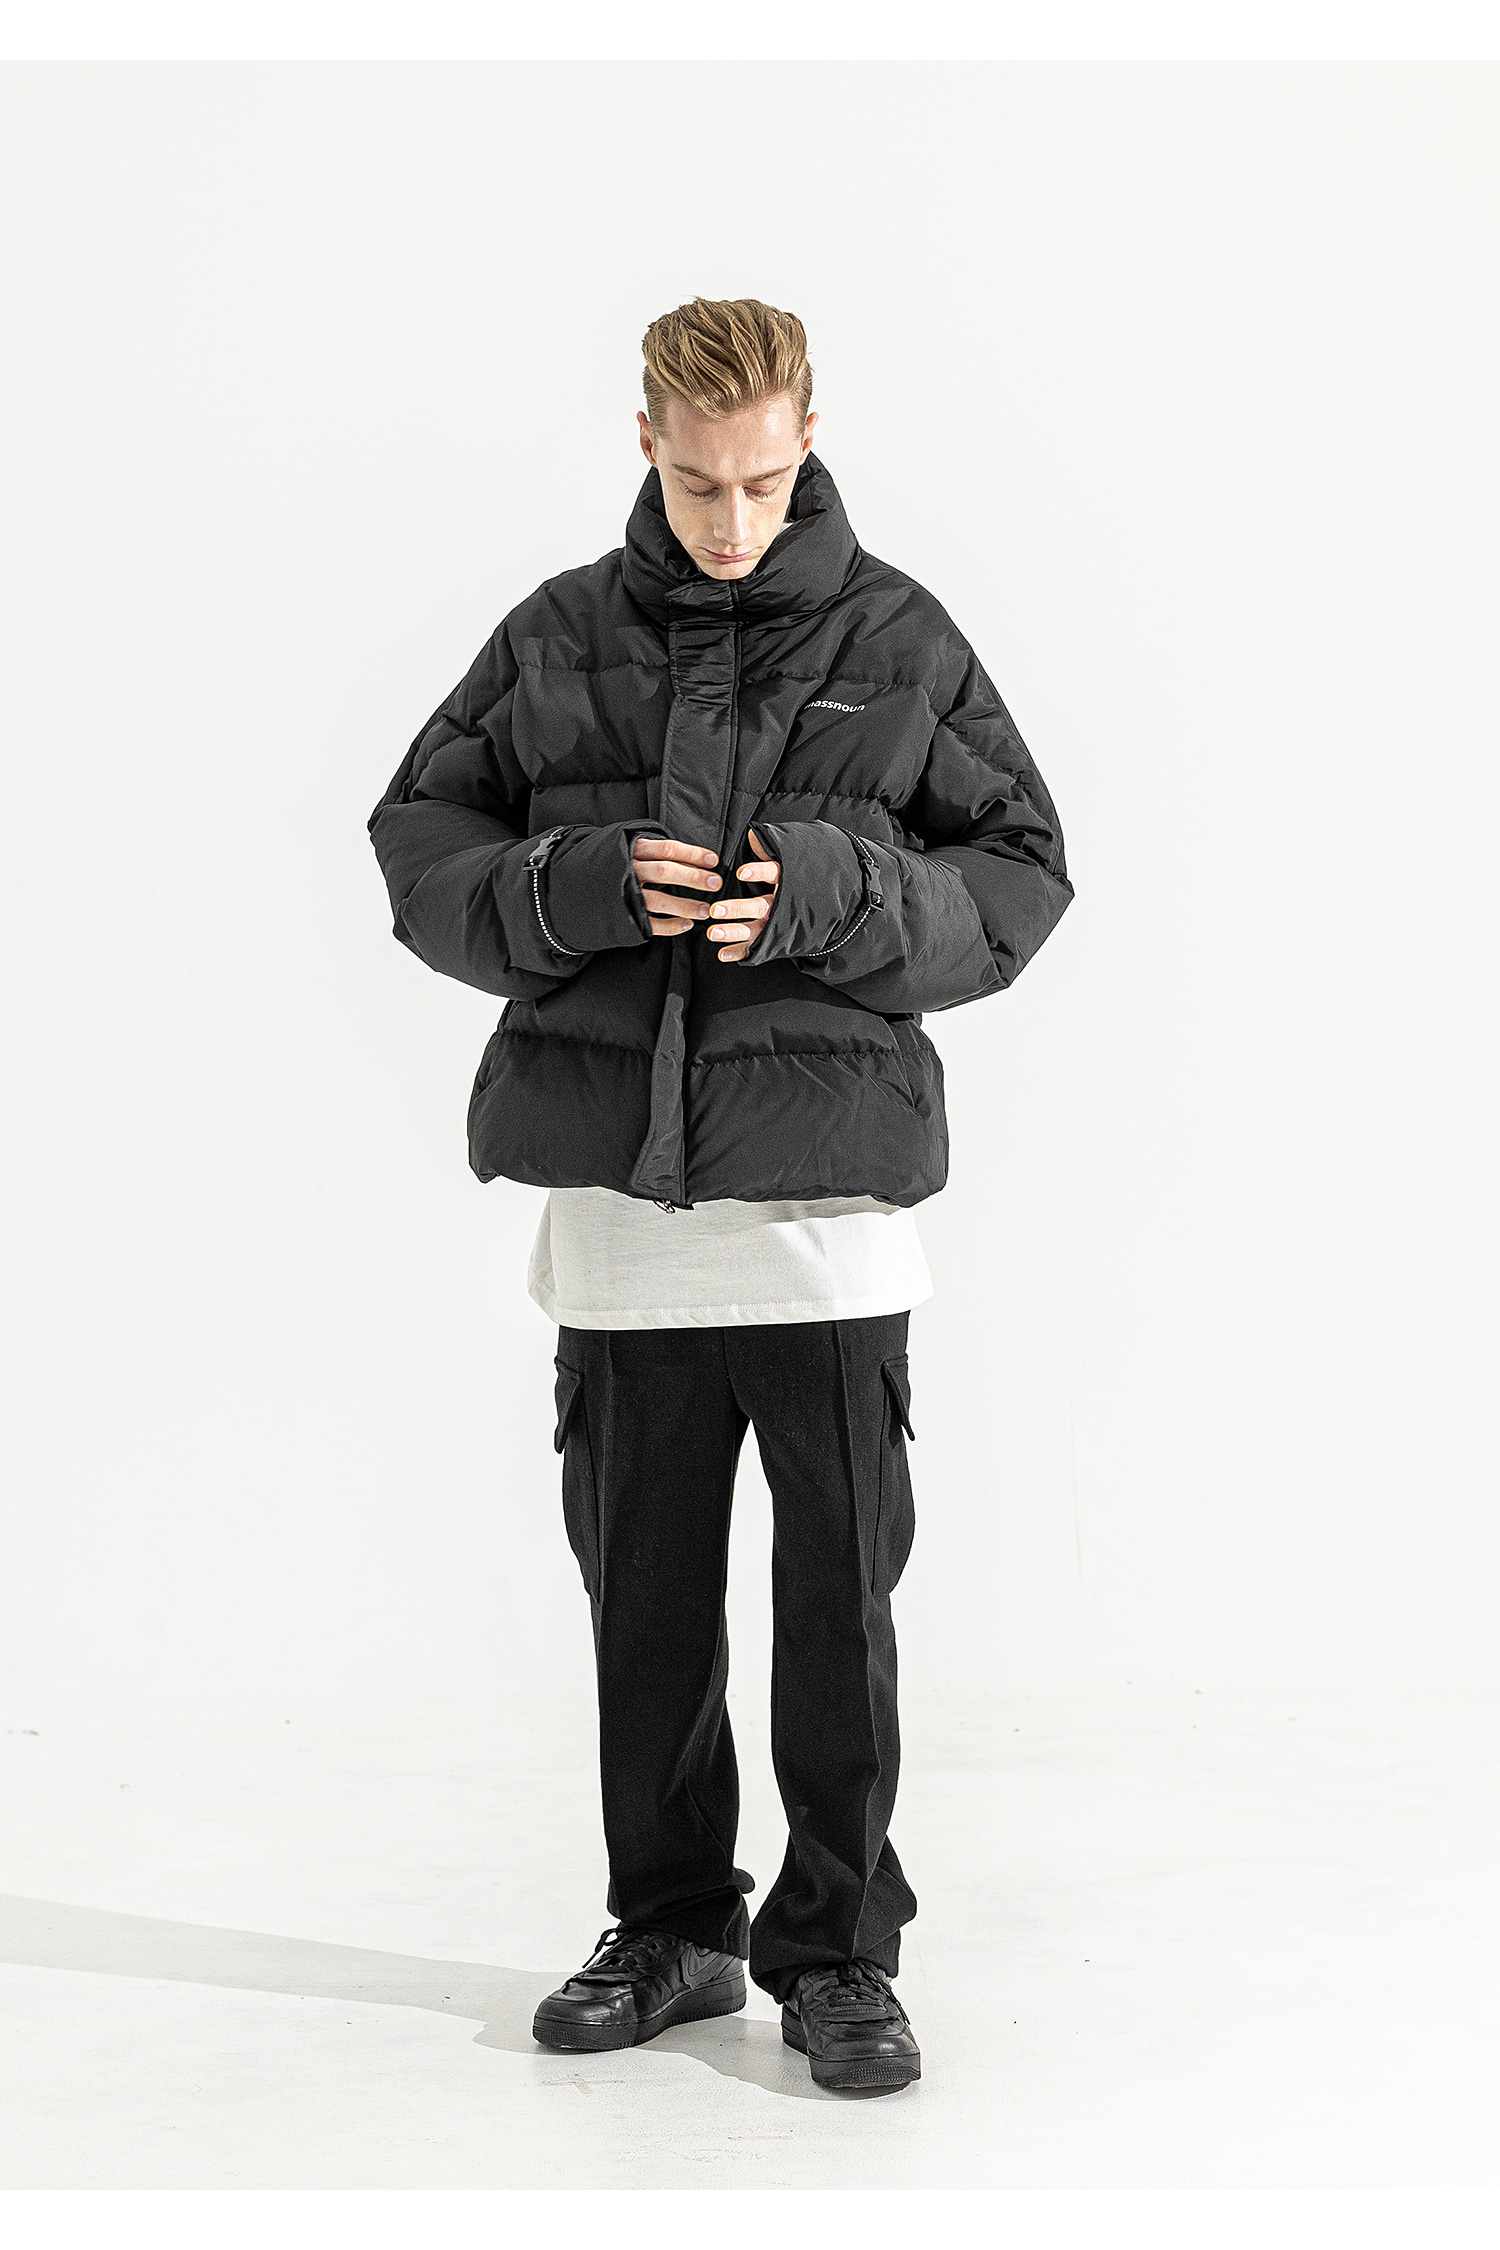 매스노운(MASSNOUN) SL LOGO REFLECTIVE OVERSIZED PADDING JUMPER MFEPD001-BK